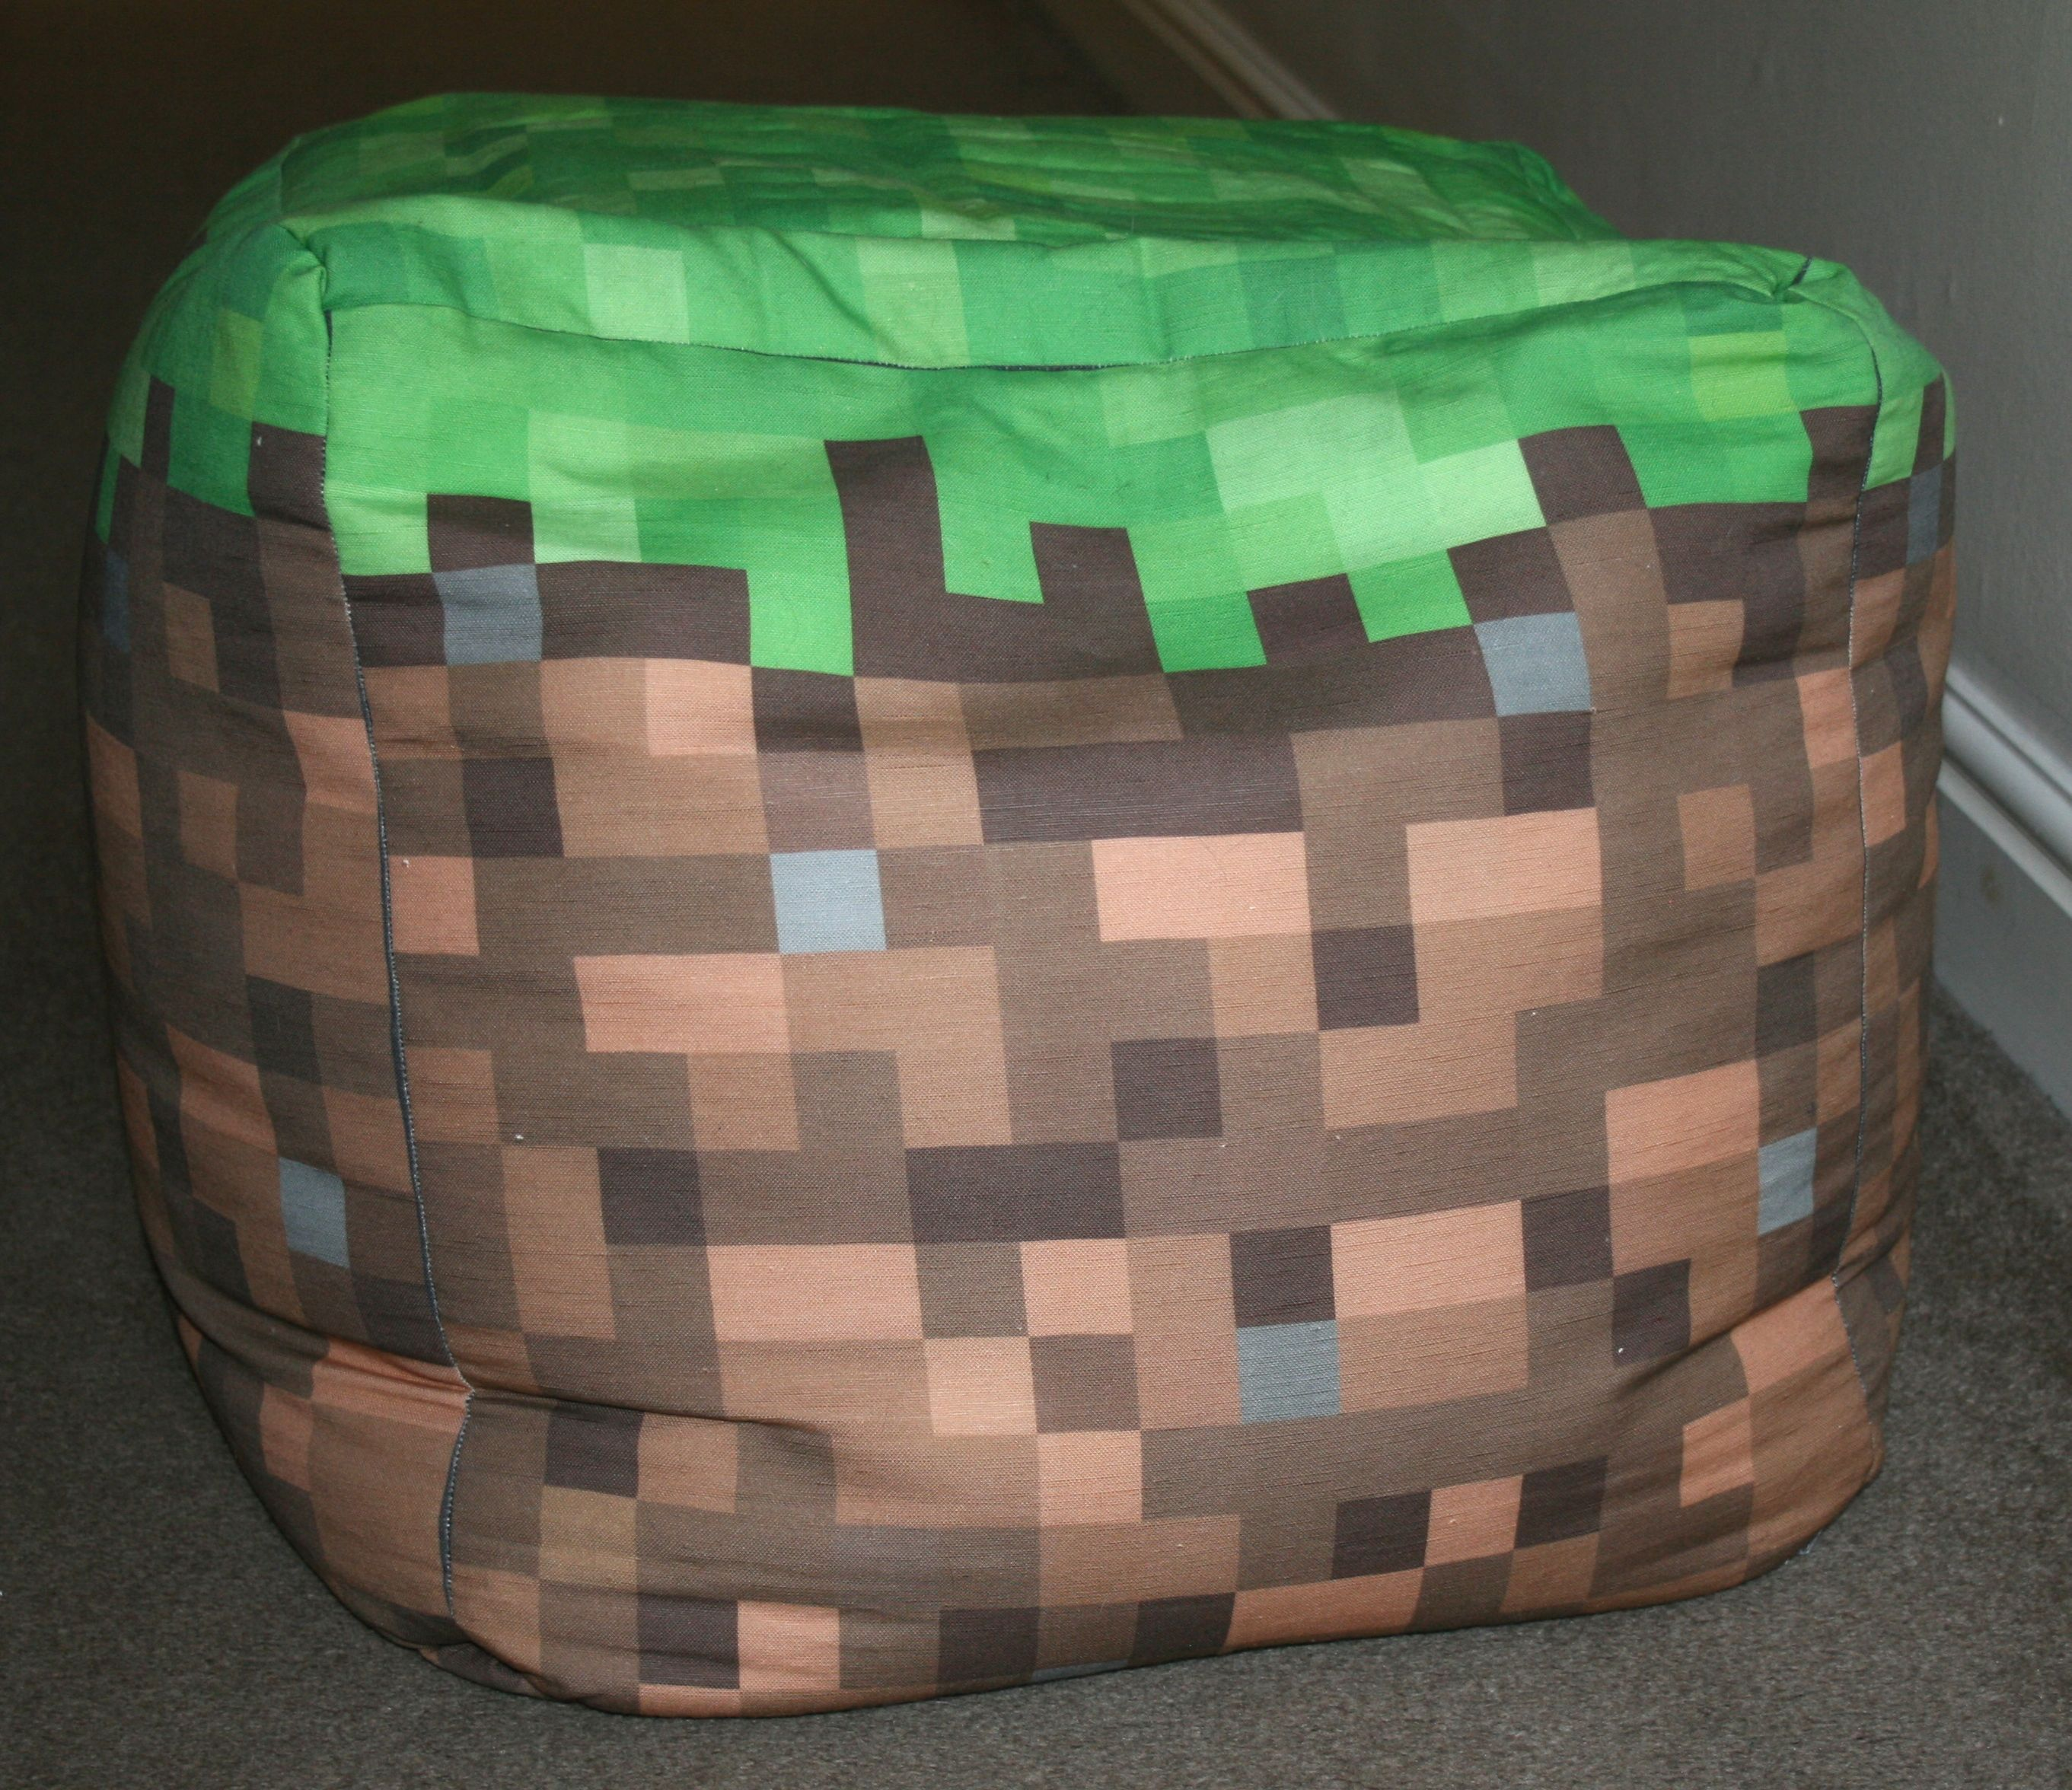 Stupendous Minecraft Beanbag Minecraft Bedroom Minecraft Room Ocoug Best Dining Table And Chair Ideas Images Ocougorg